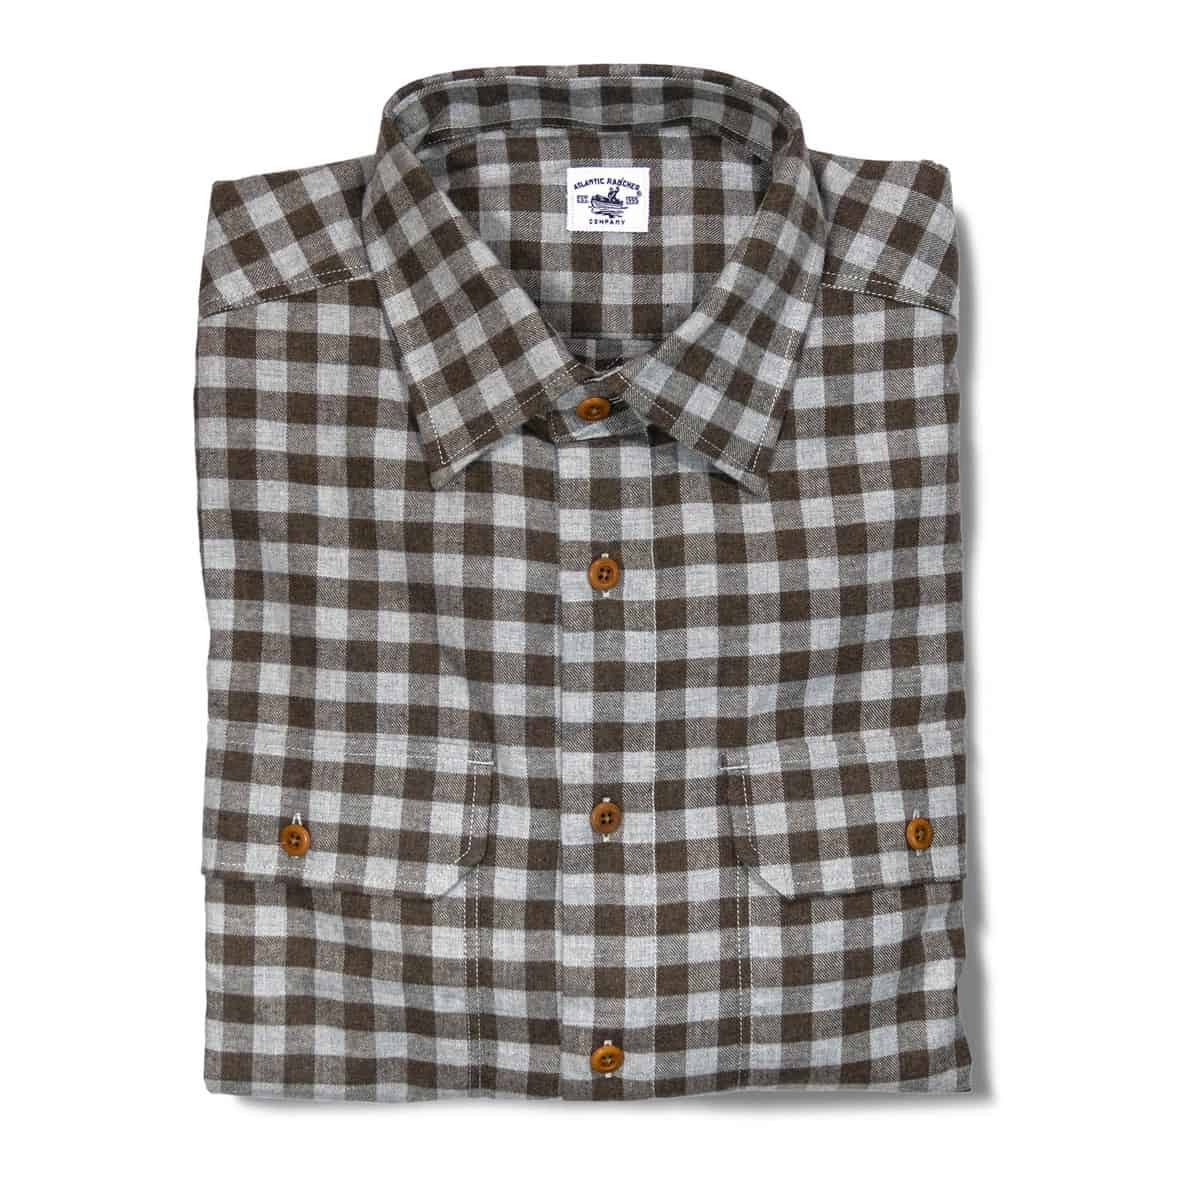 Buy The Bayman's Flannel Shirt - Caramel